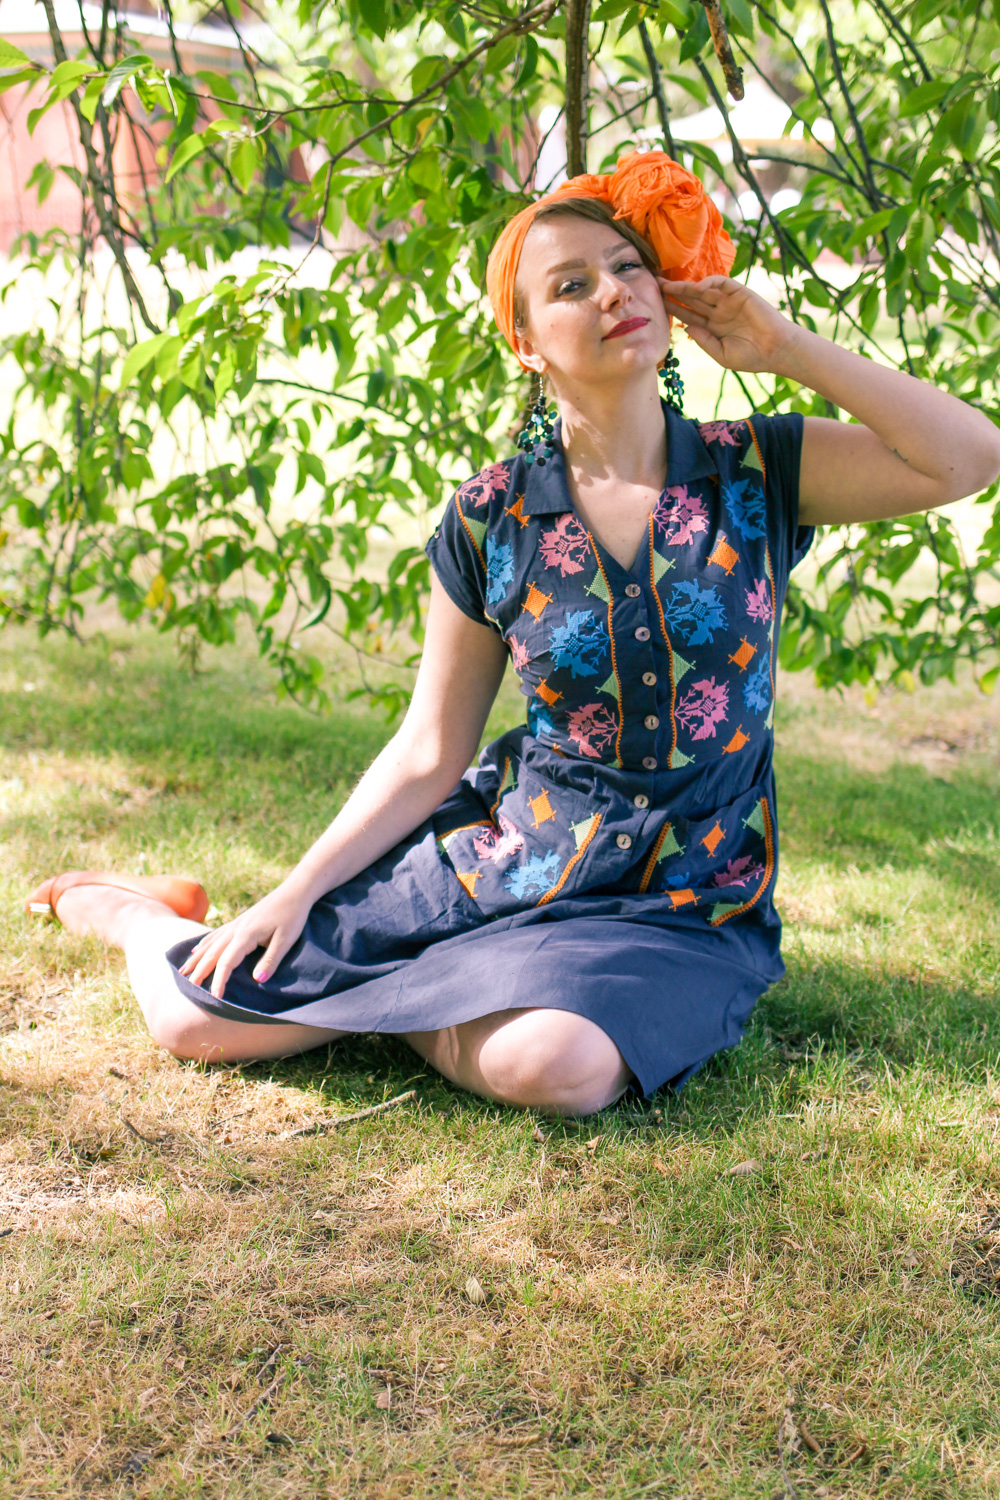 @findingfemme wears Lazybones cross stitched dress with orange scarf.